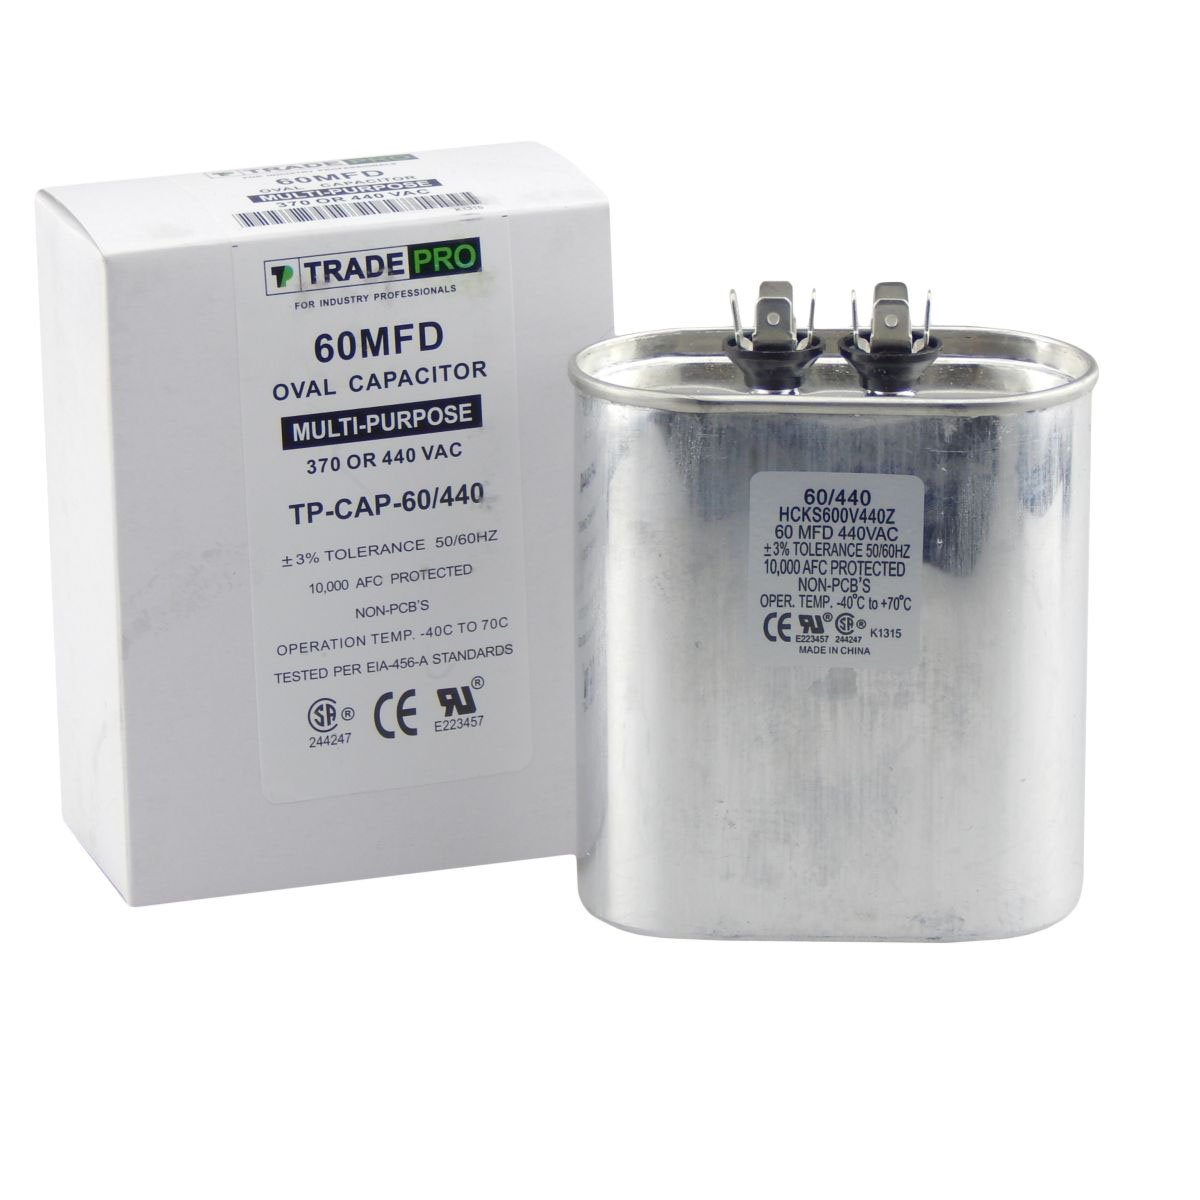 60 mfd Capacitor, Industrial Grade Replacement for Central Air-Conditioners, Heat Pumps, Condenser Fan Motors, and Compressors. Oval Multi-Purpose 370/440 Volt - by Trade Pro